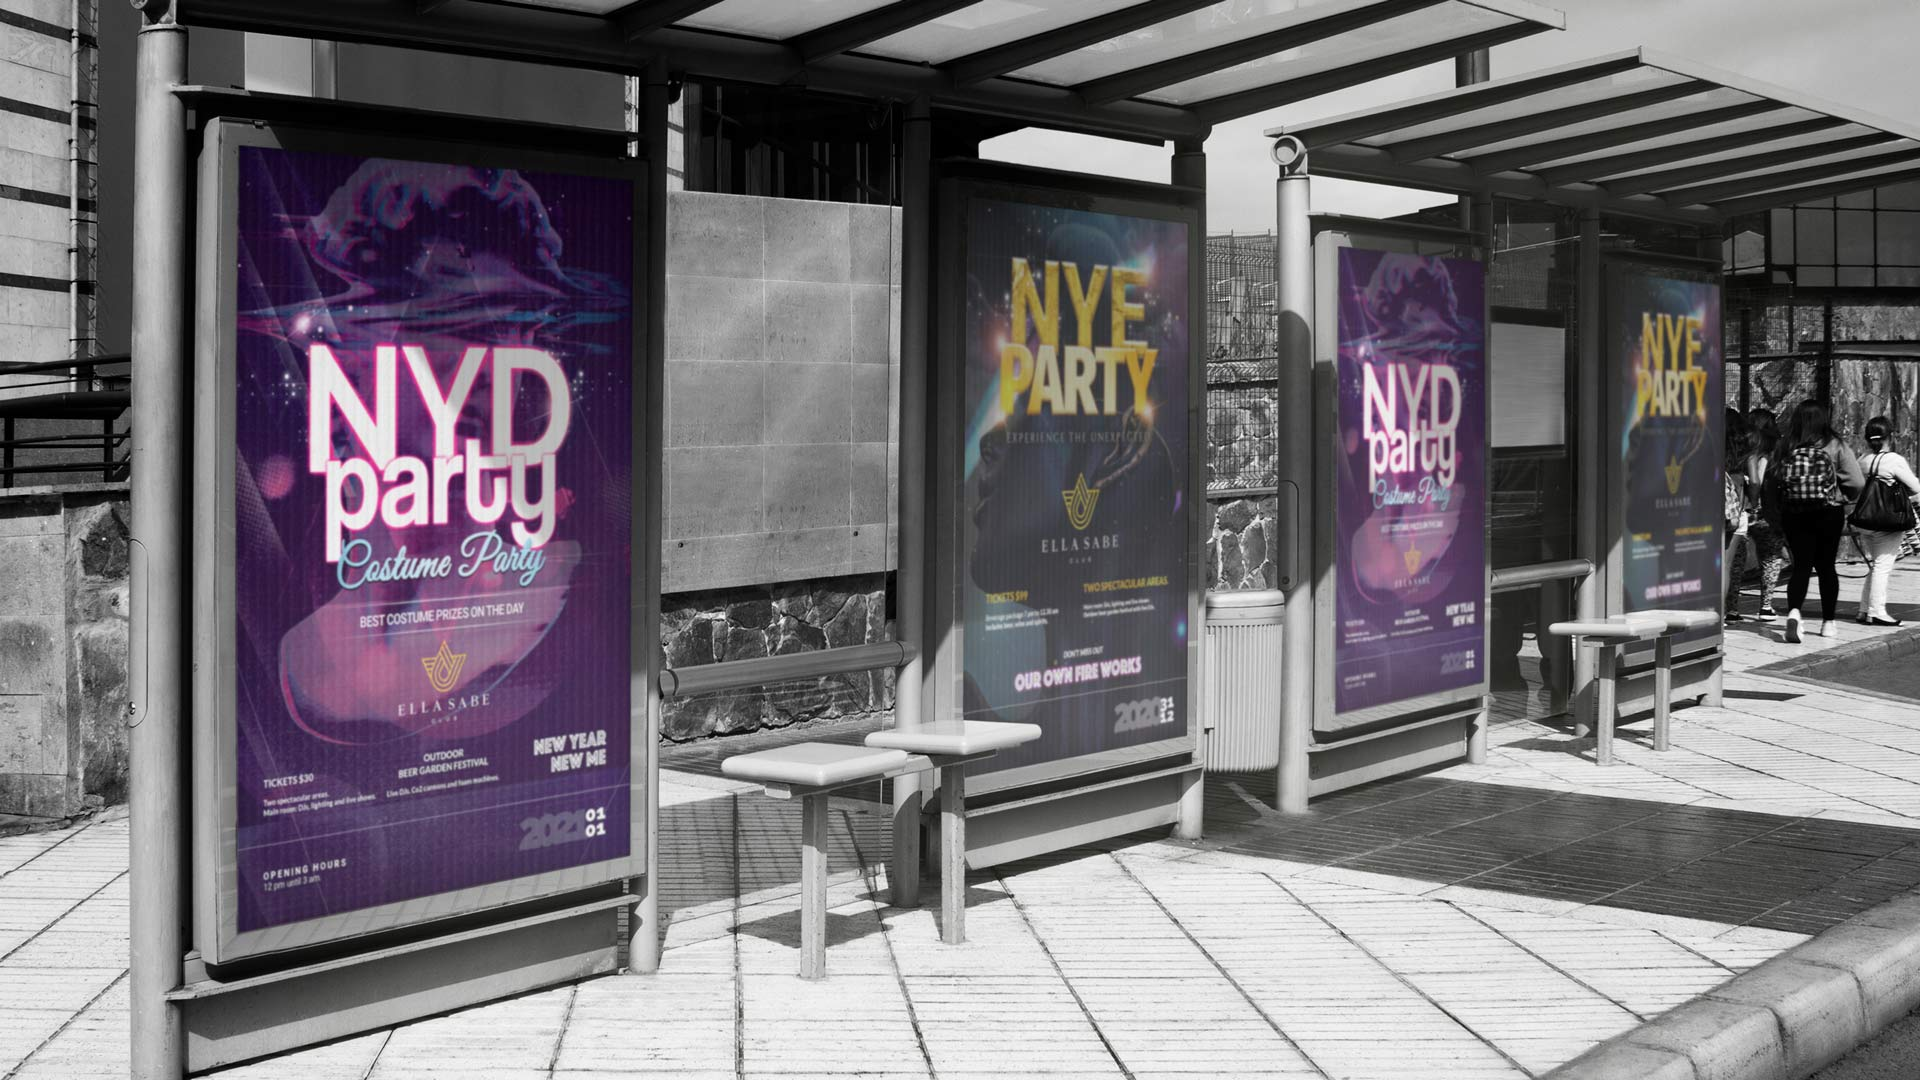 Poster advertisements designed by Ronin Marketing on display for Ella Sabe's Brisbane NYE event.